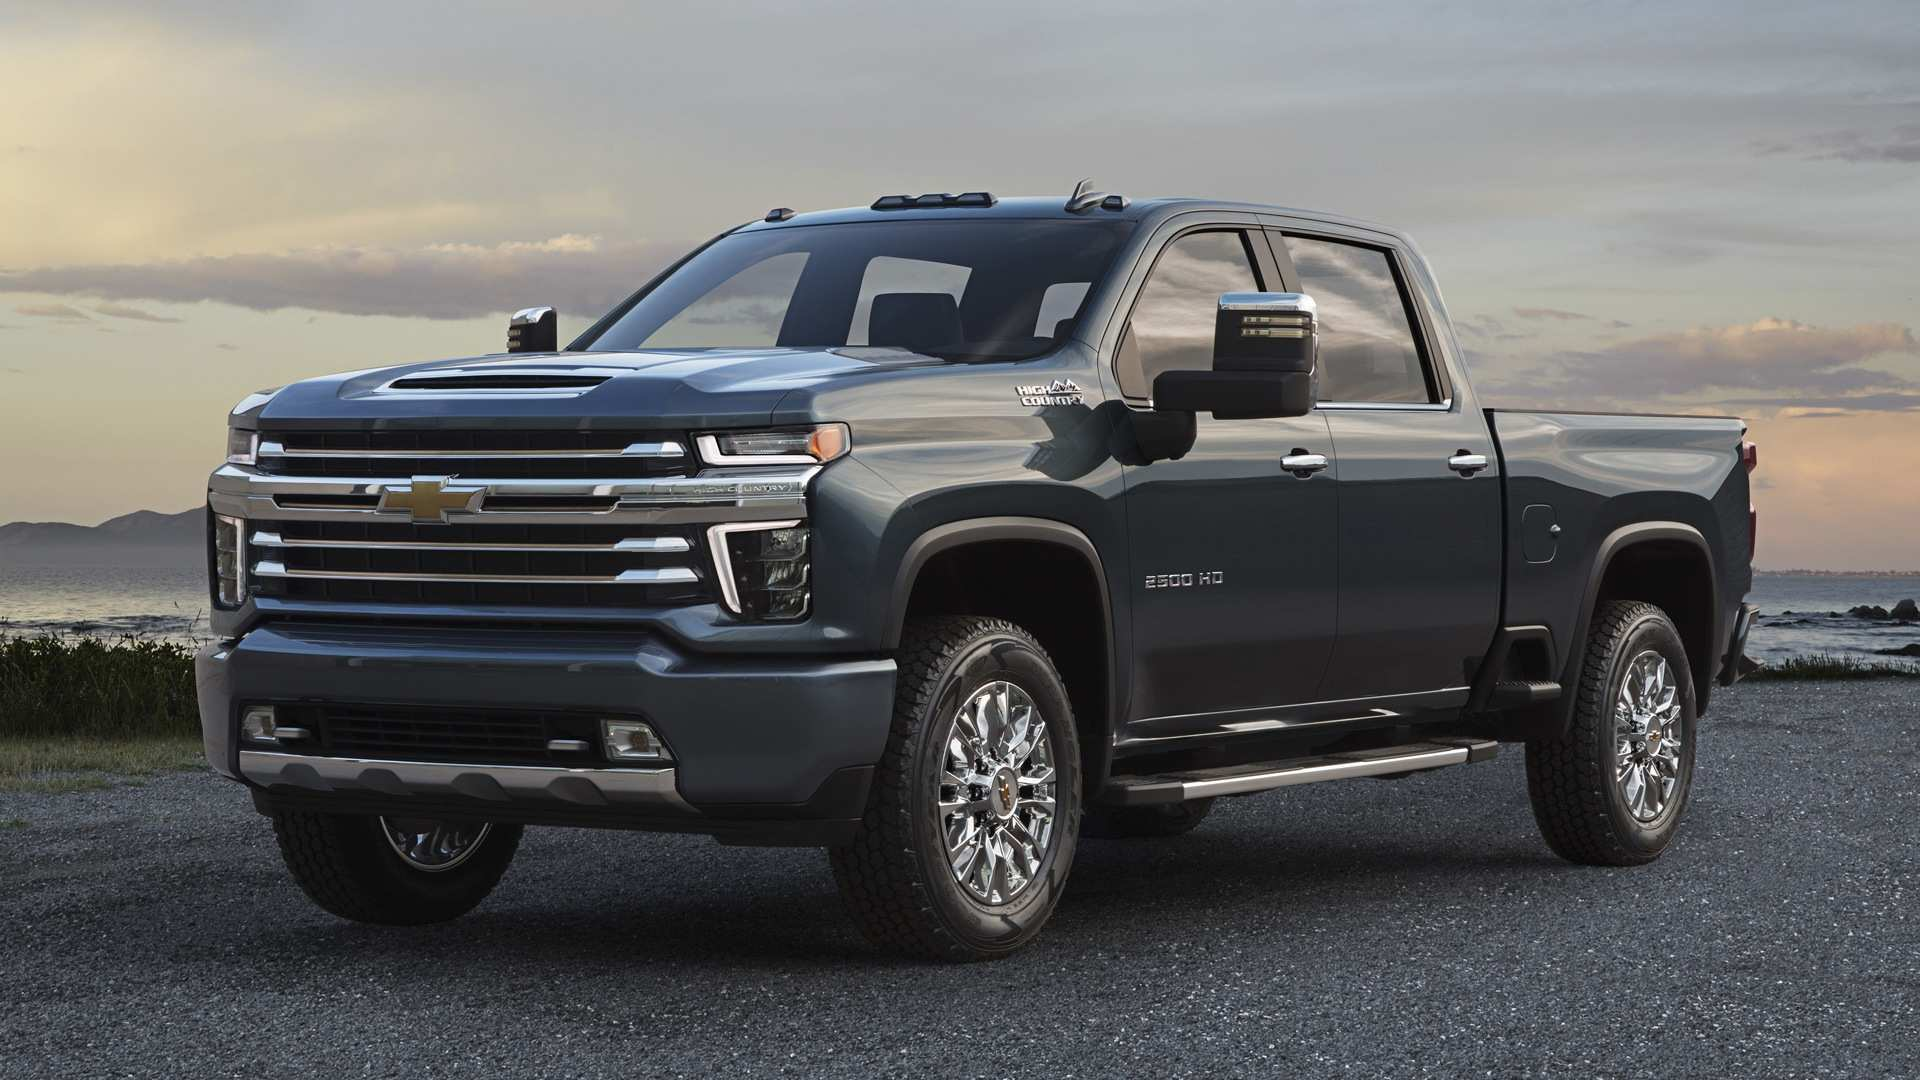 89 Great 2020 Silverado 1500 2500 Hd Photos for 2020 Silverado 1500 2500 Hd